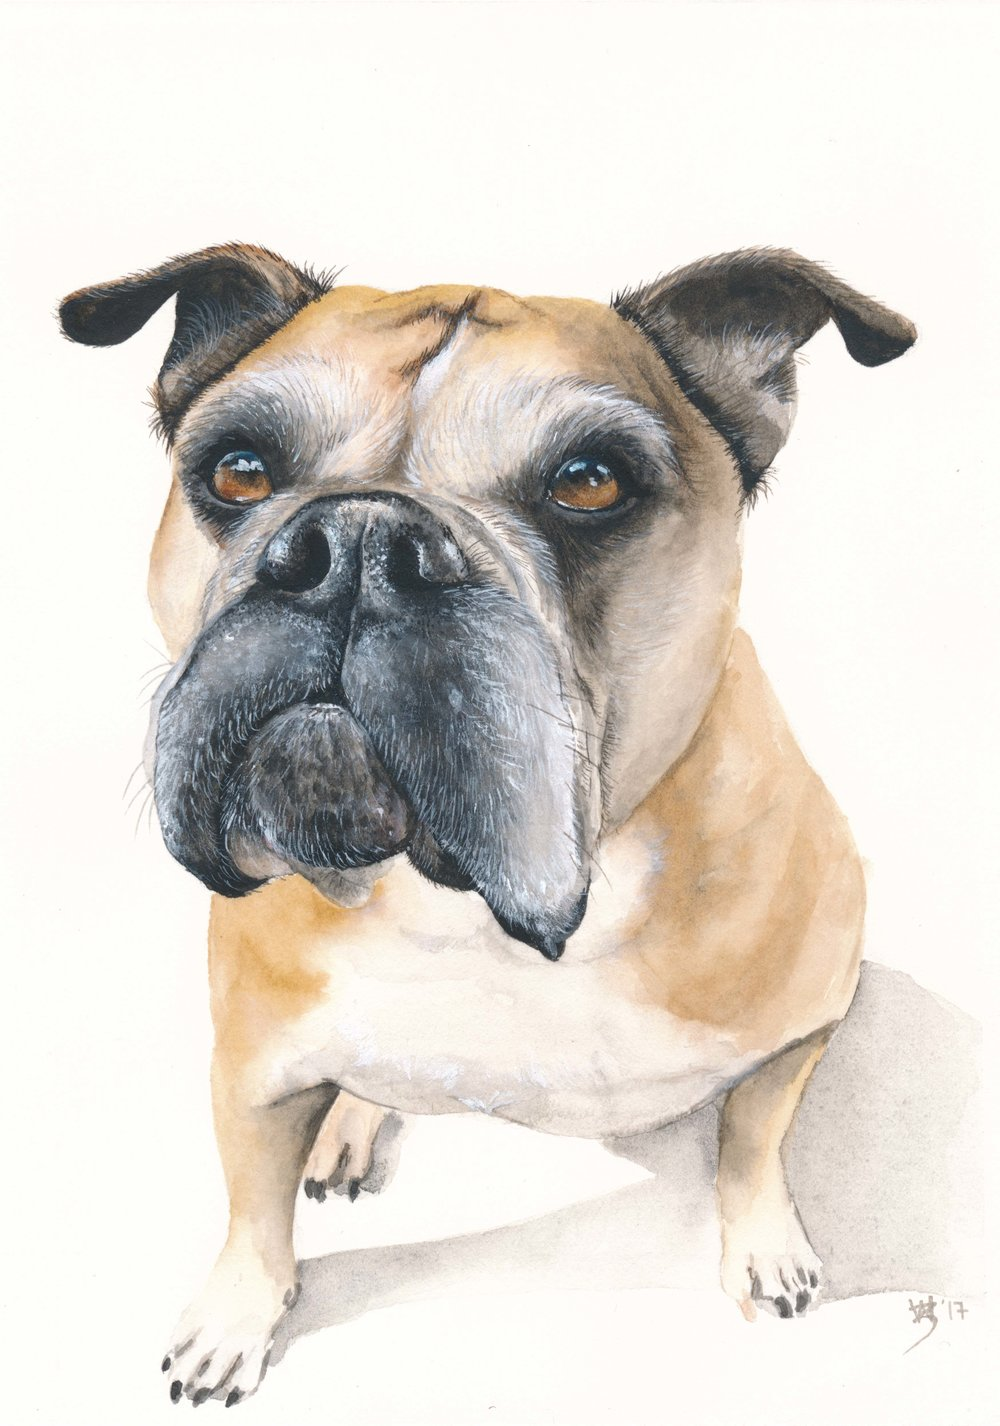 Brutus A5 Portrait watercolour - Zoe Wood 2017.jpg